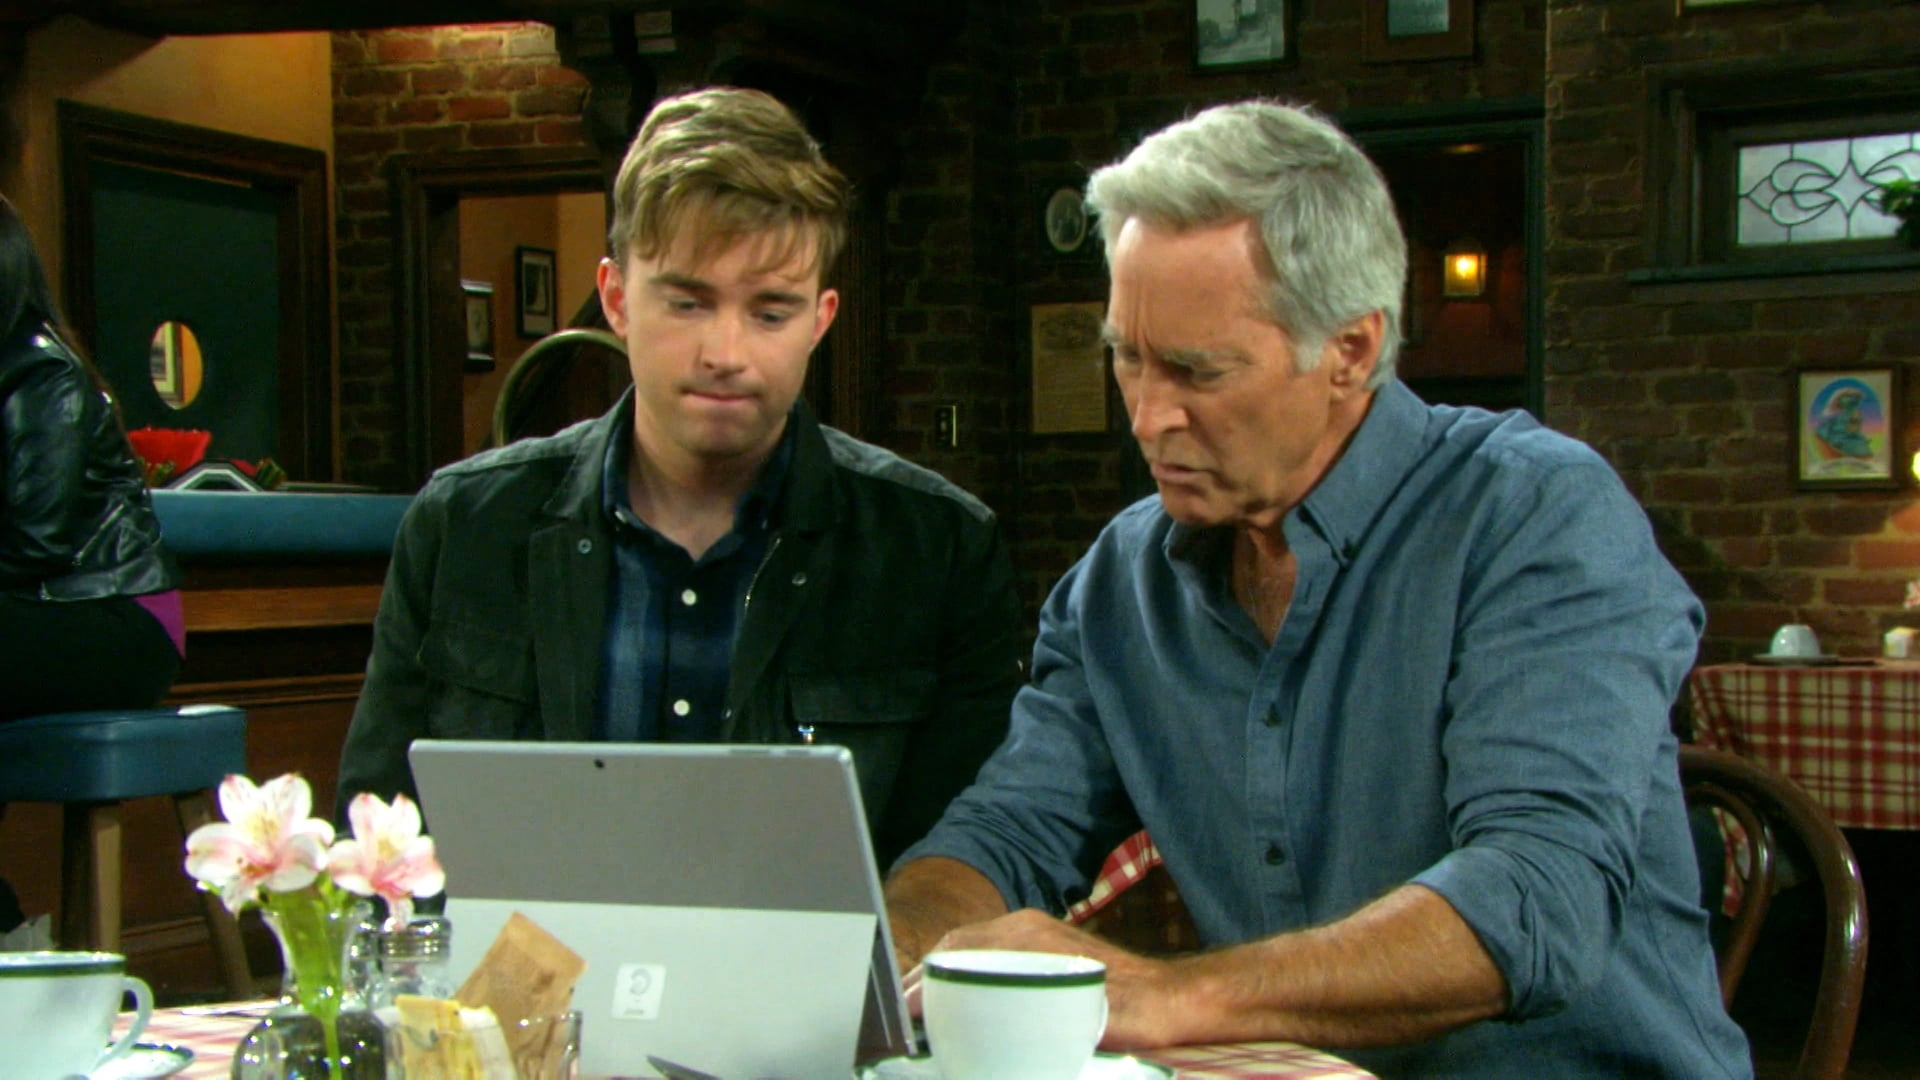 Days of Our Lives Season 54 :Episode 79  Tuesday January 15, 2019